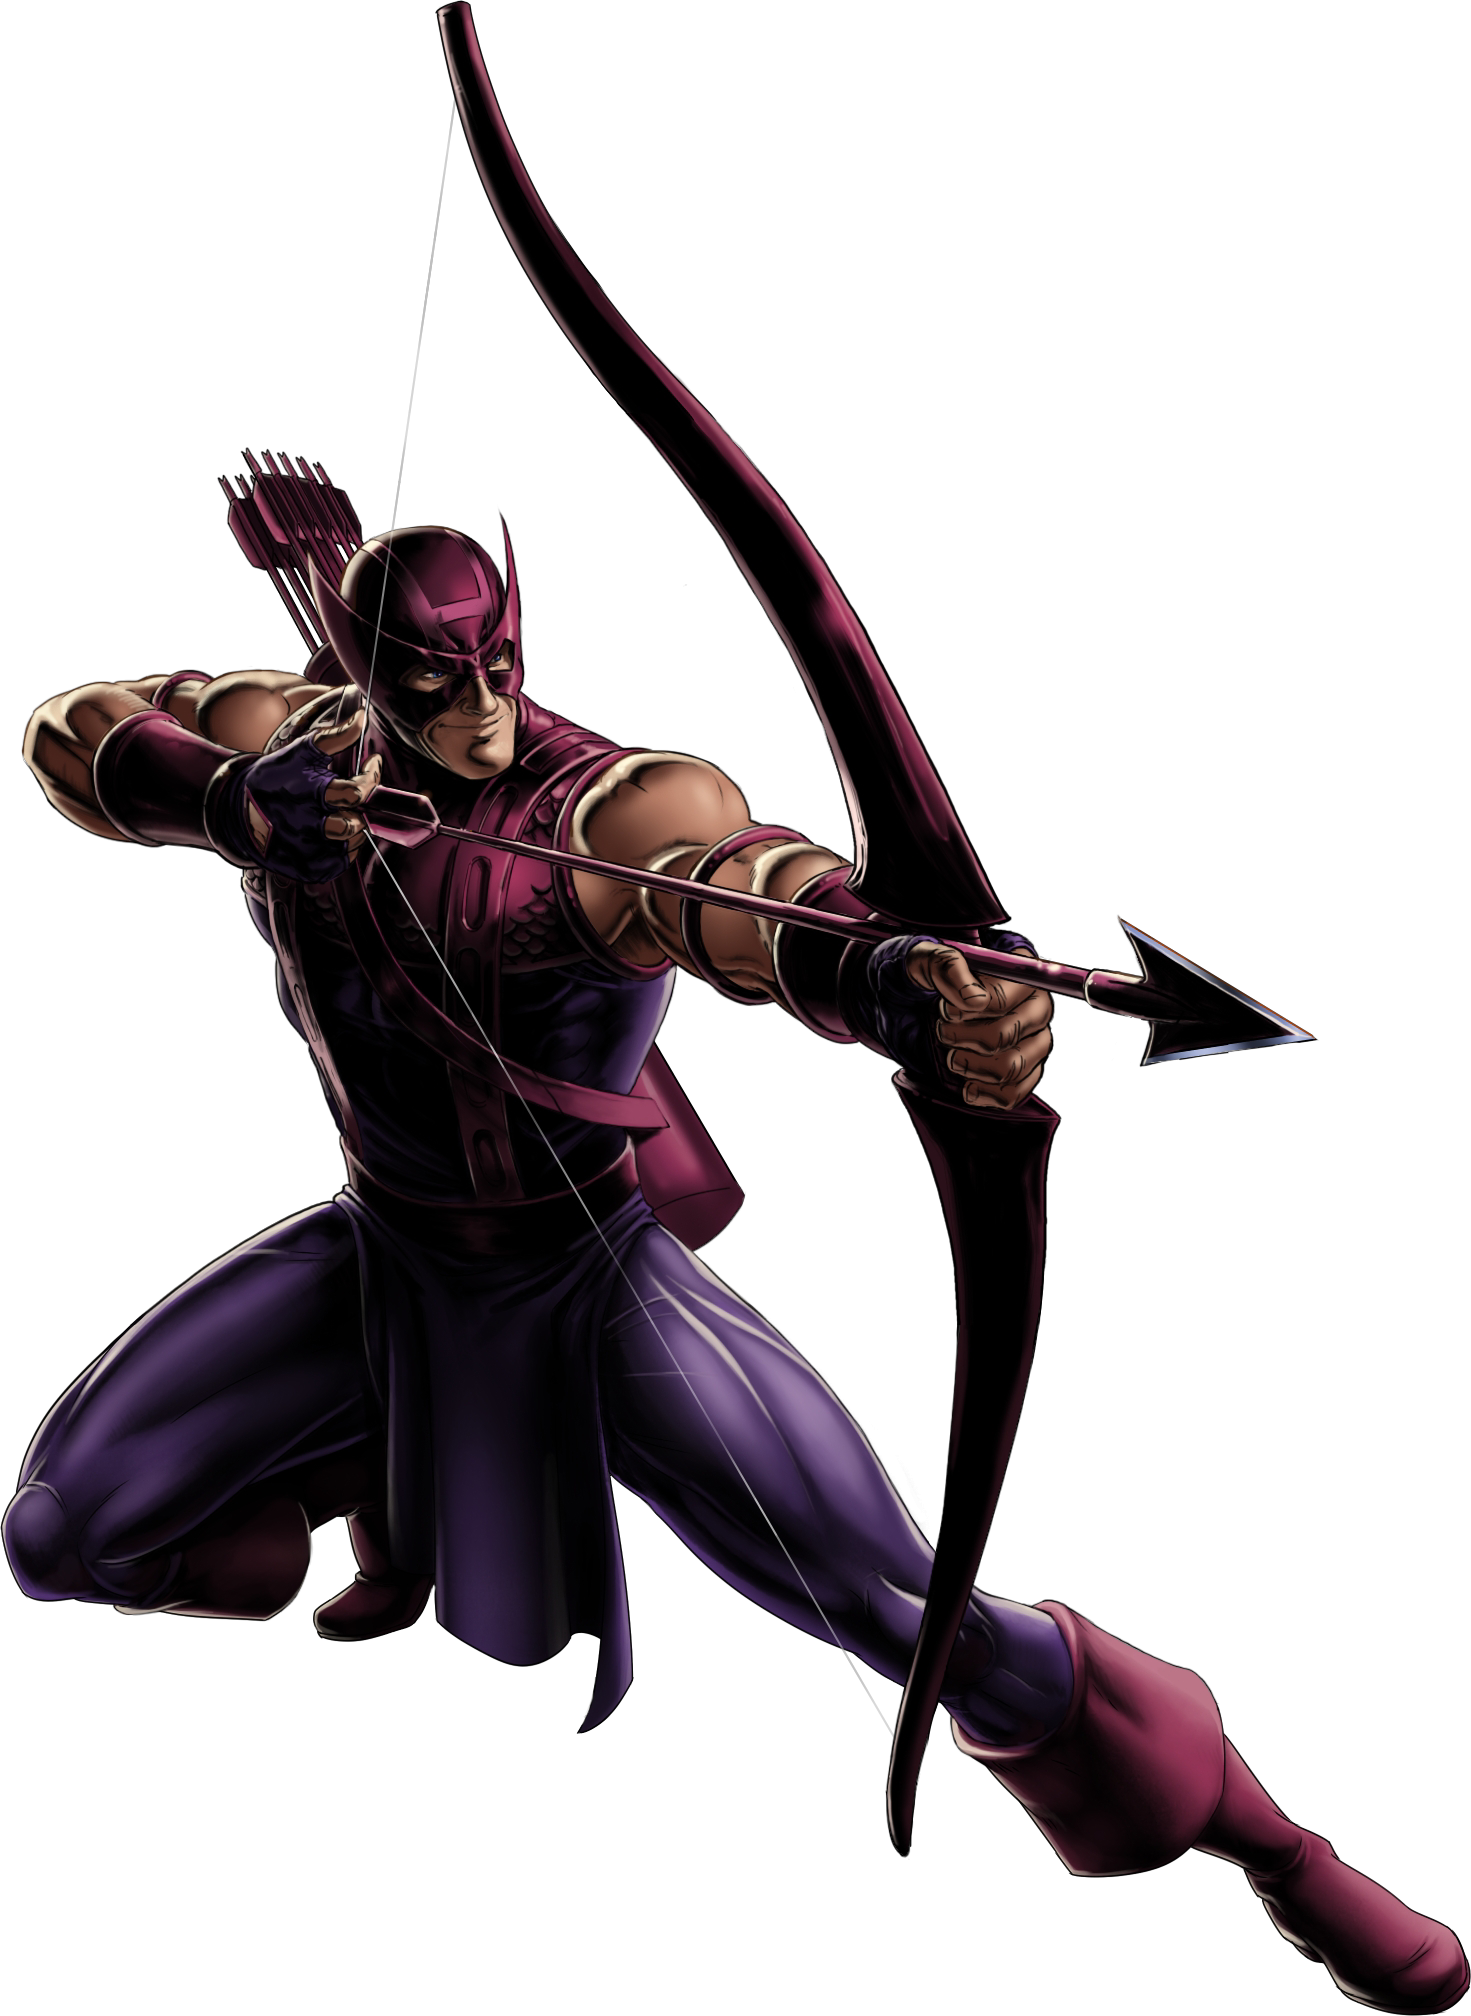 Hawkeye Transparent Background - Hawkeye PNG